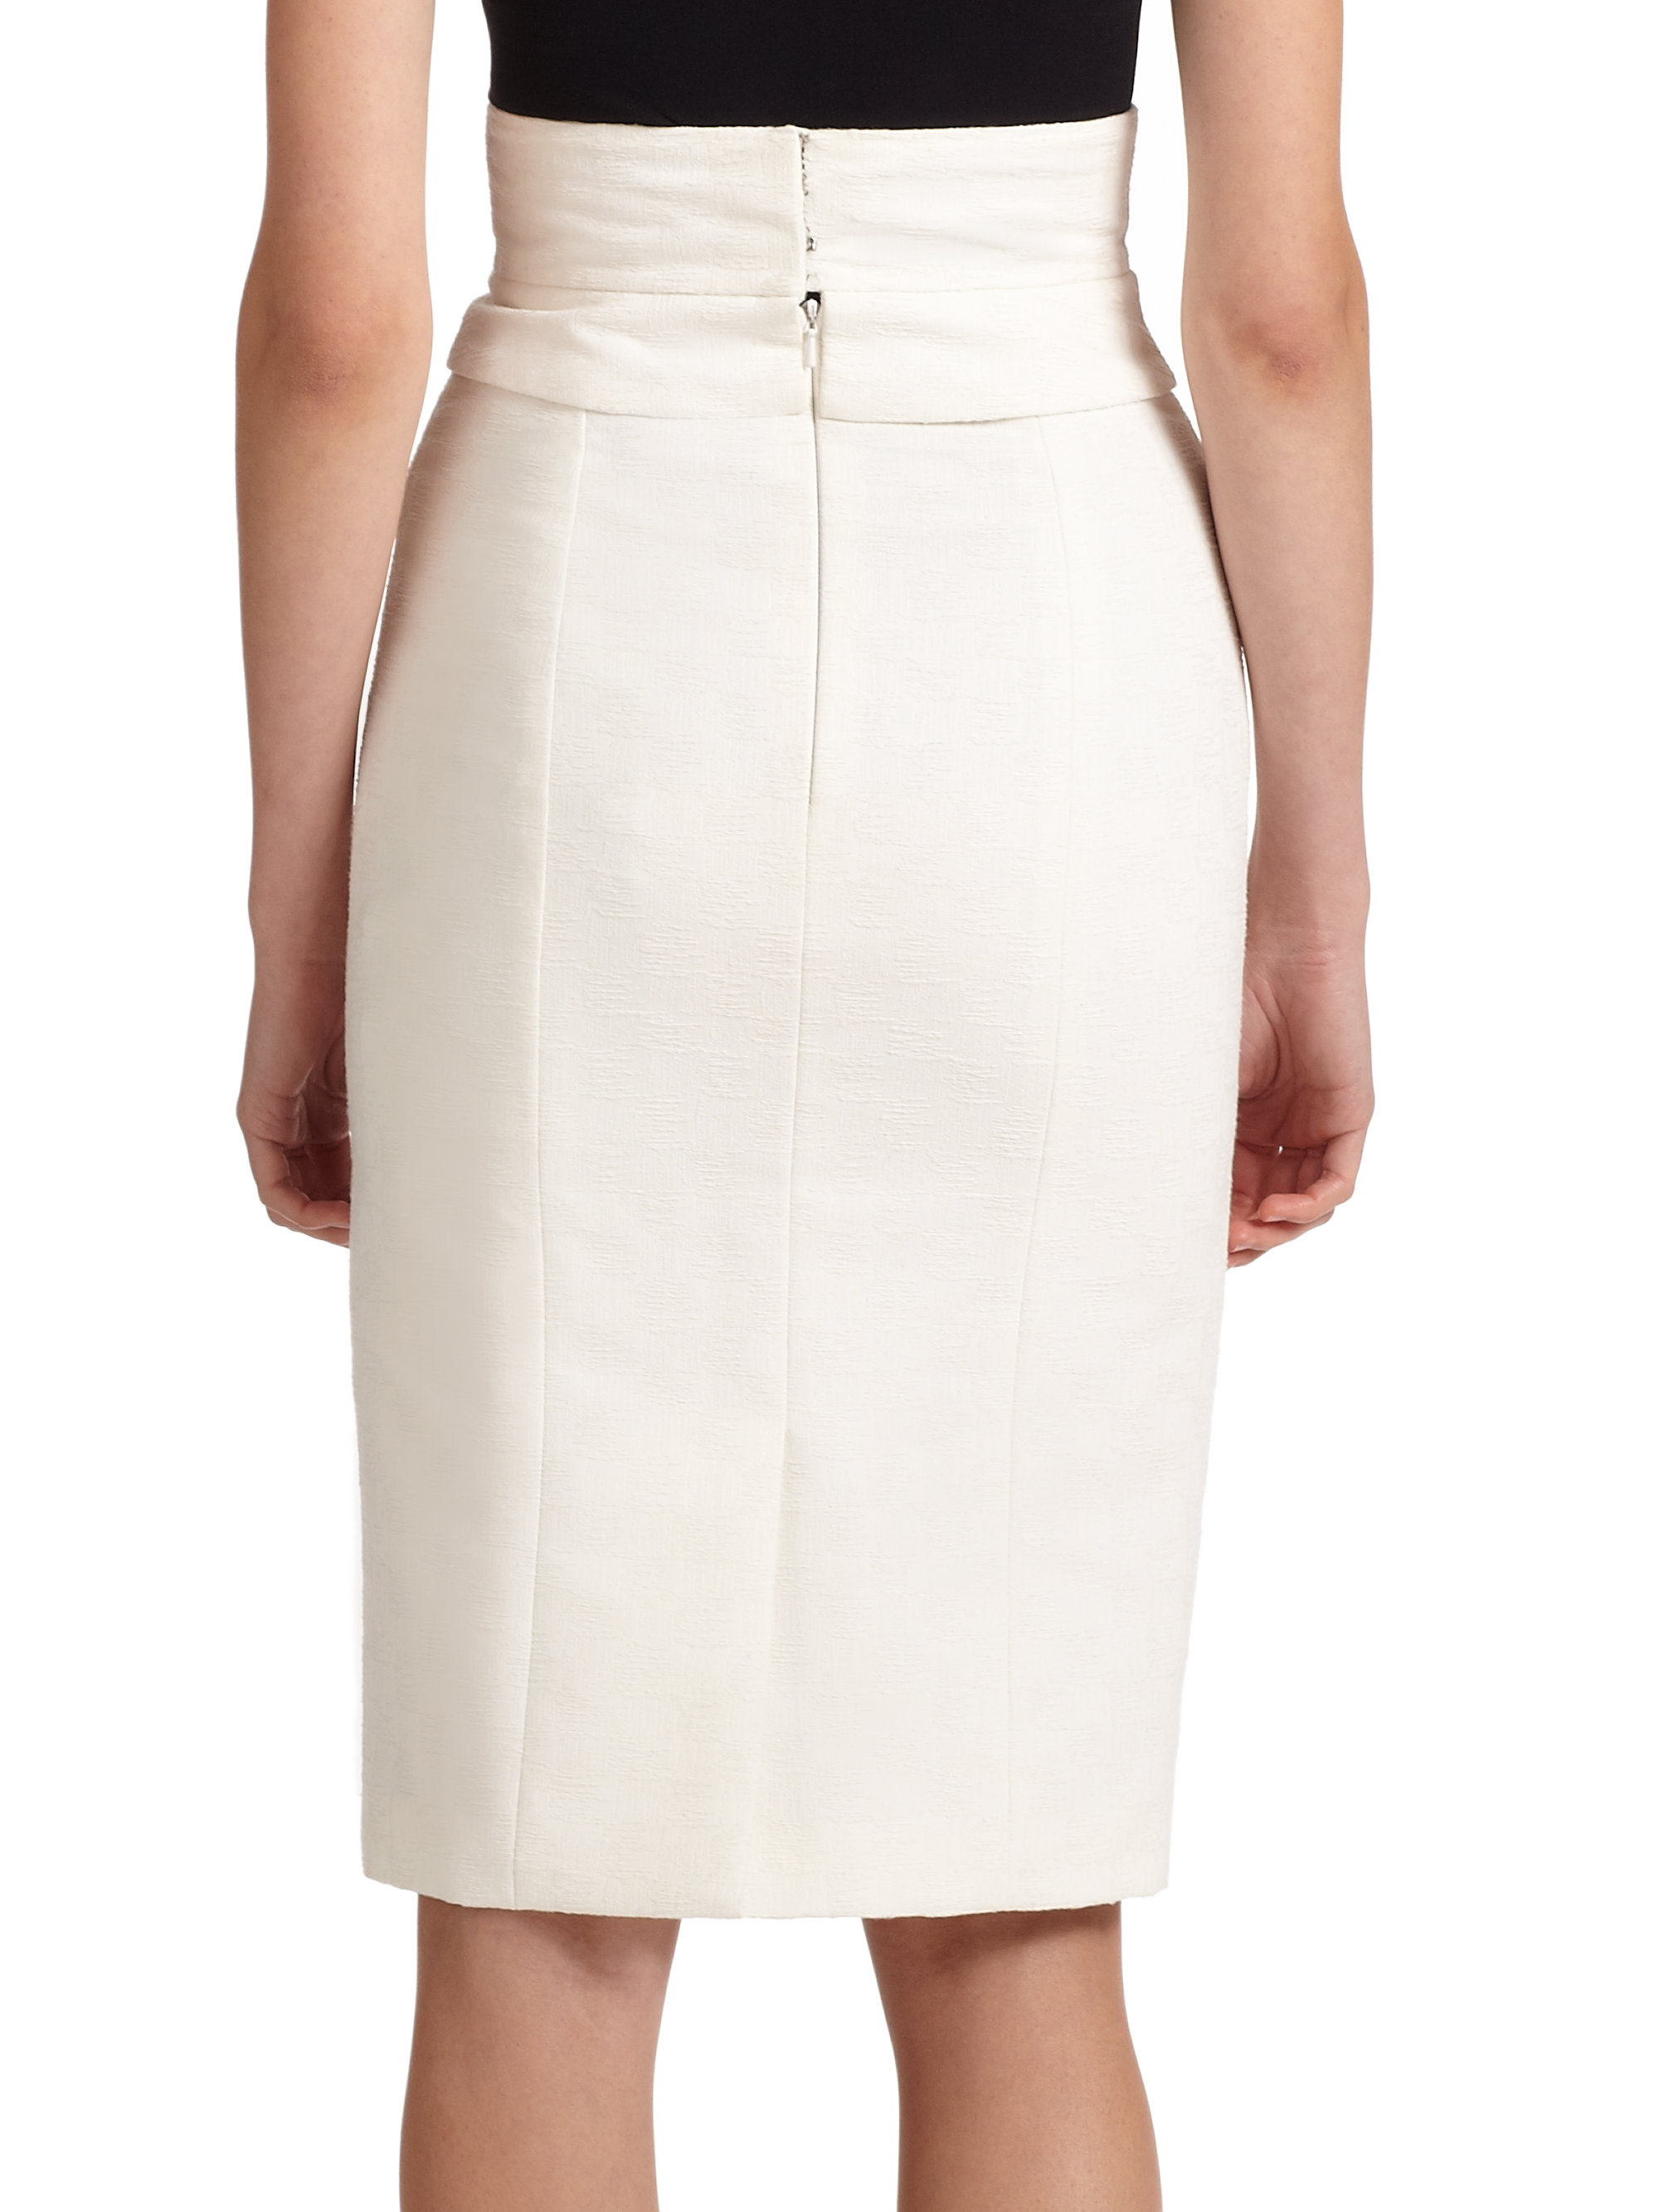 Lyst - Carolina Herrera High-waist Pencil Skirt in White